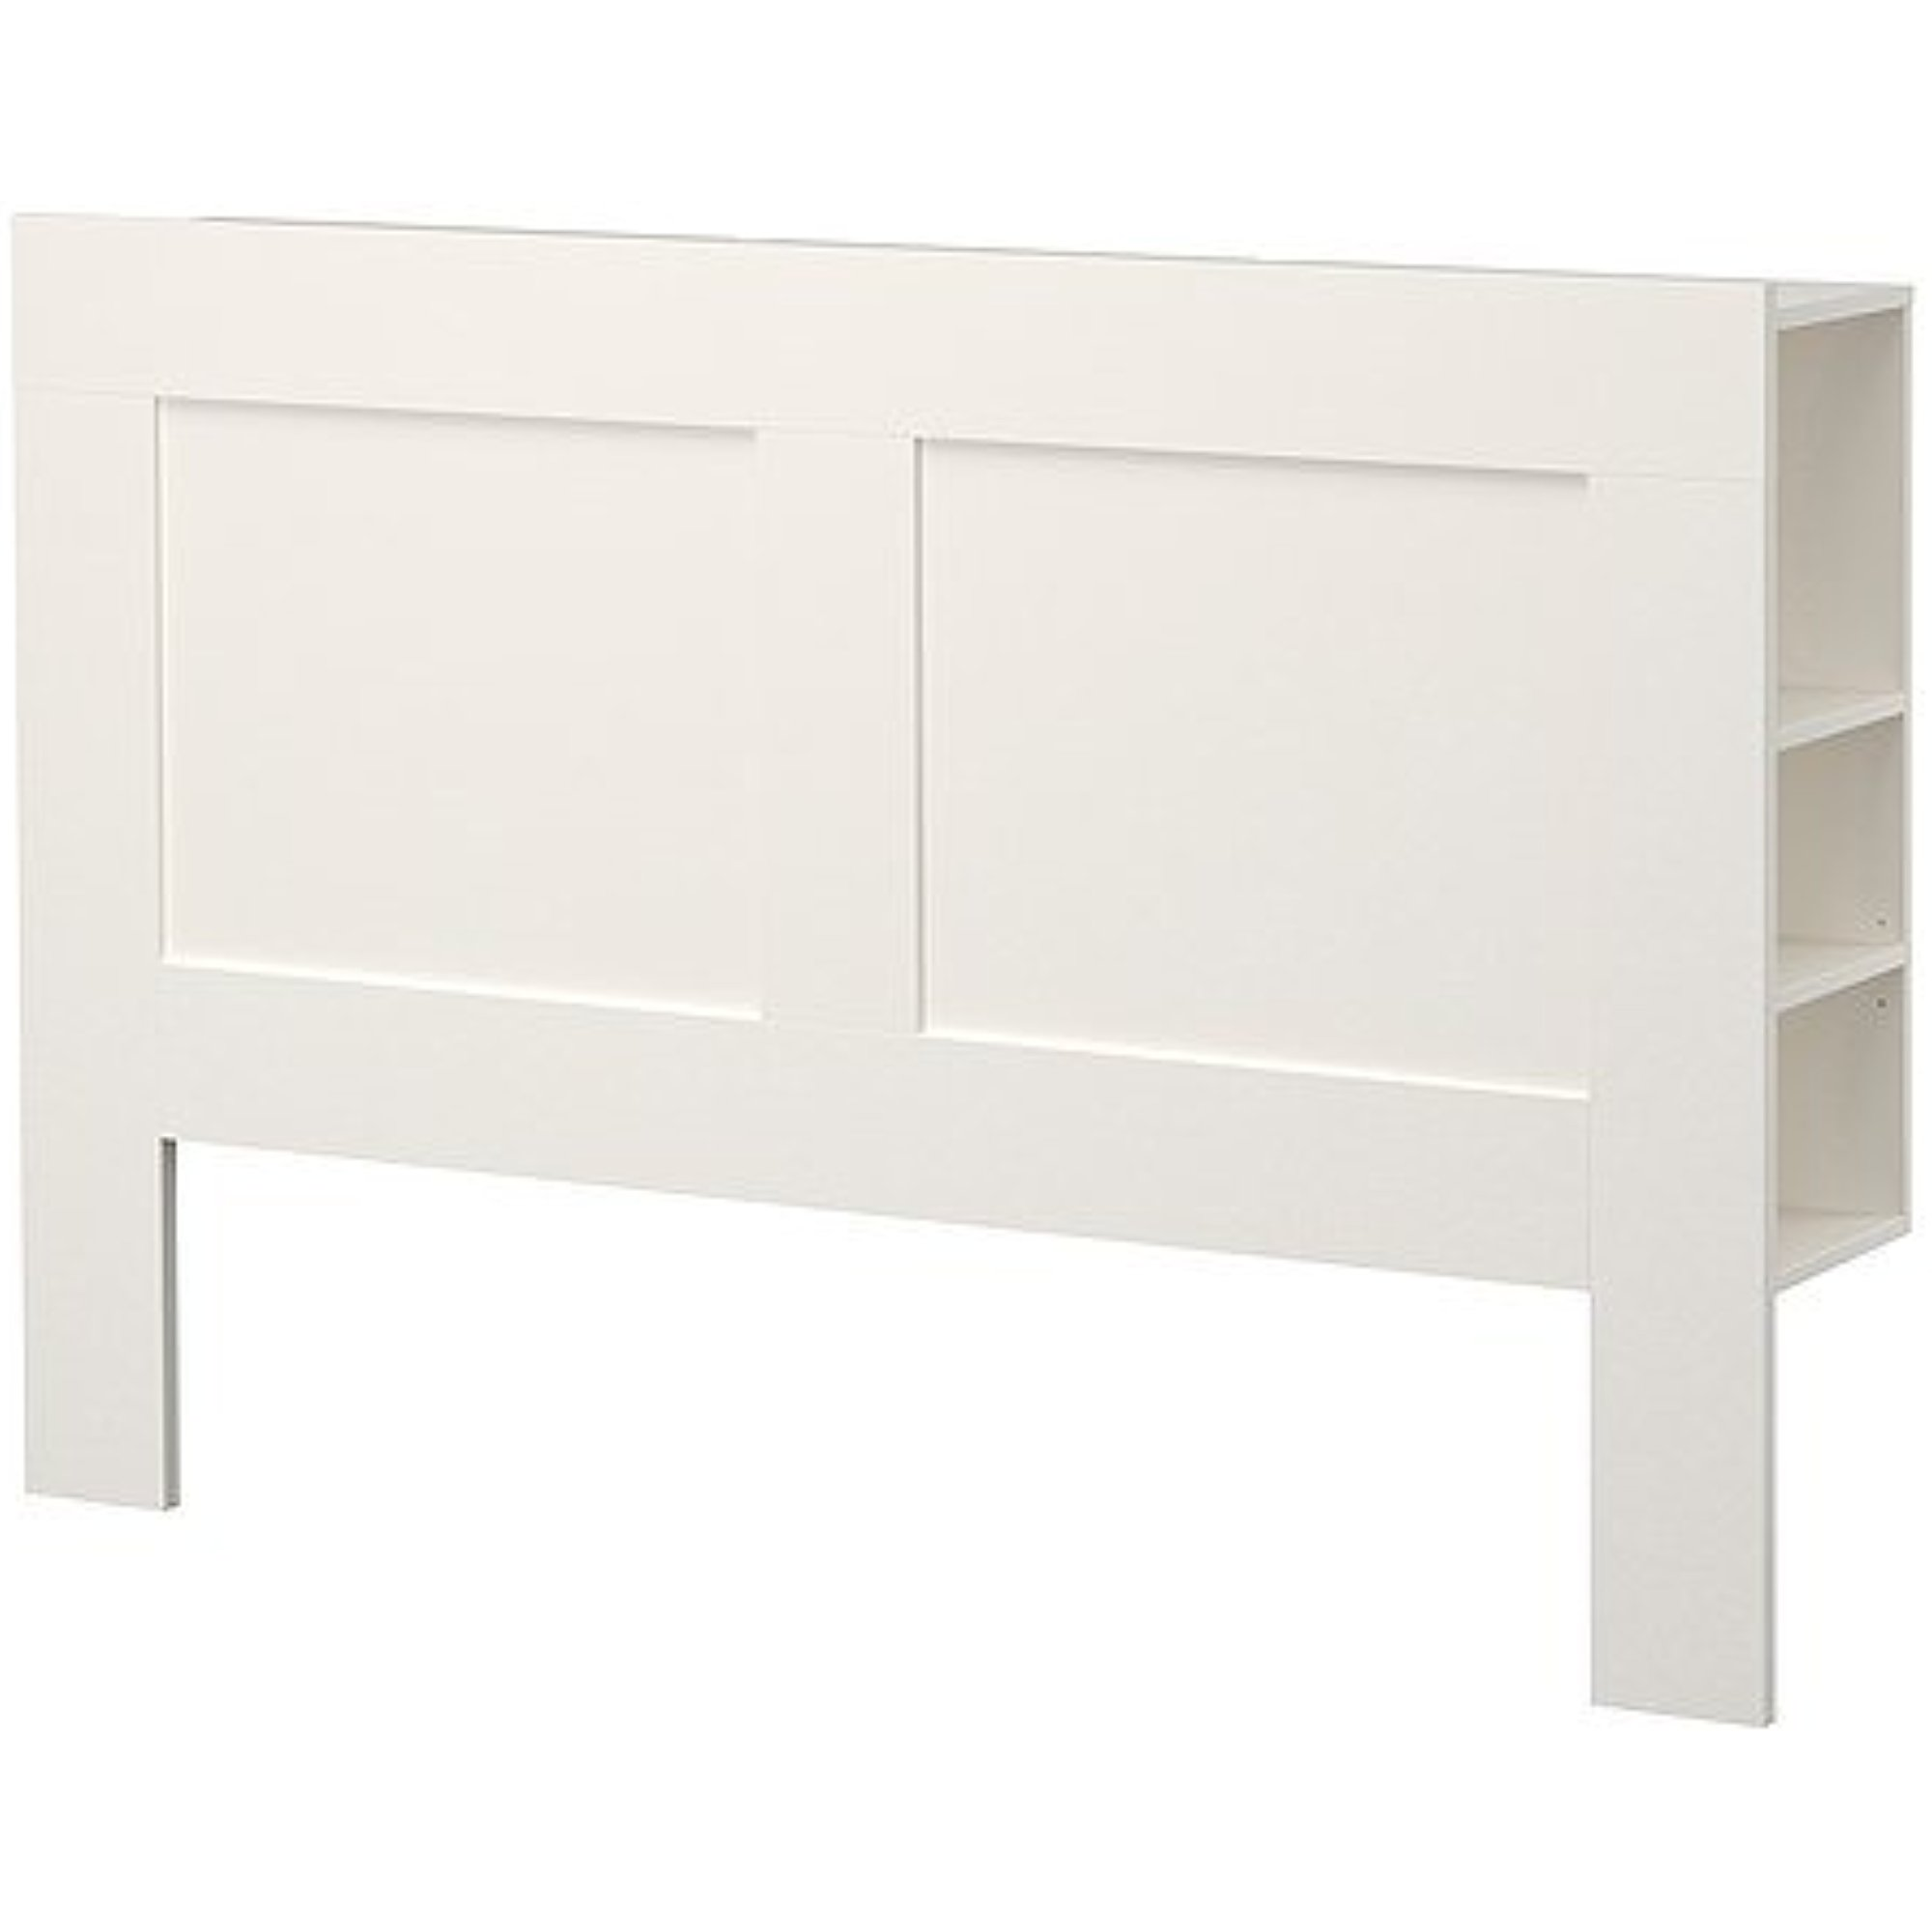 Ikea Full/Double Size Headboard With Storage Compartment, White  10210.82623.410